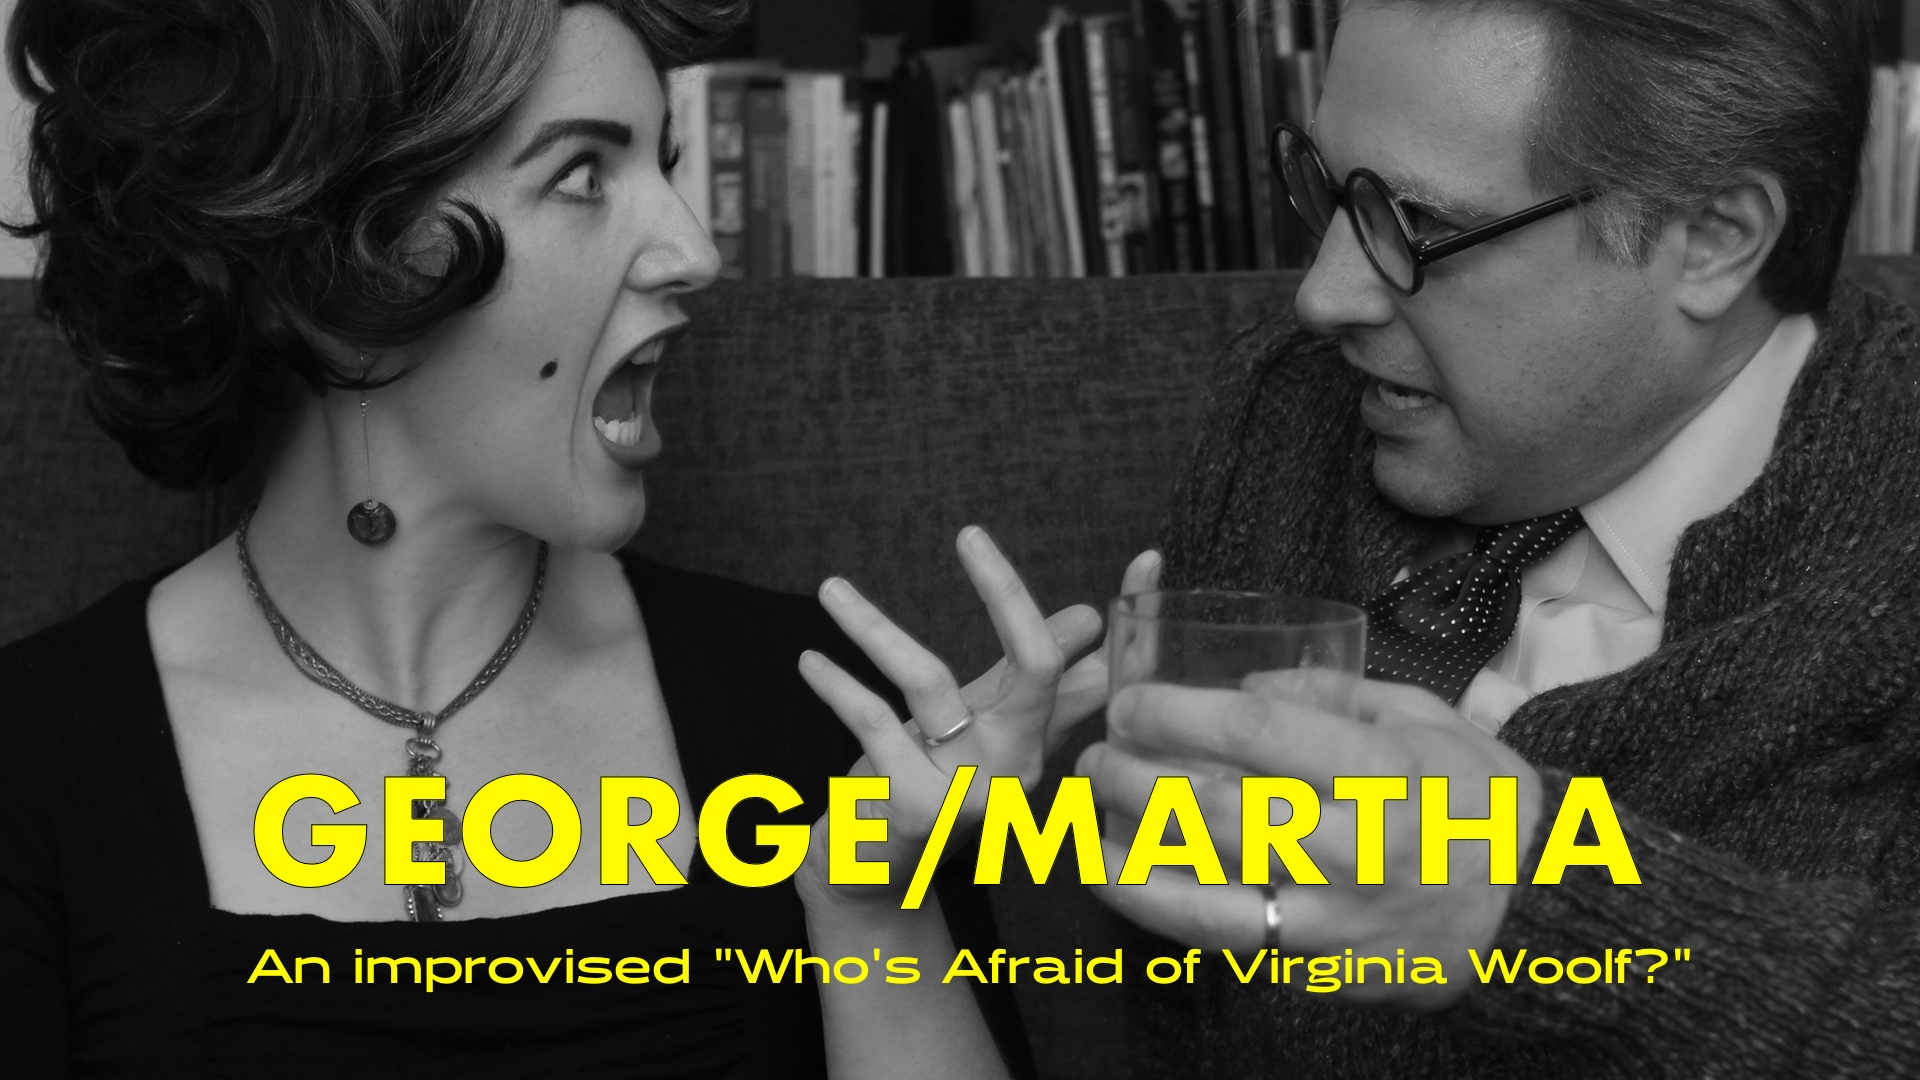 GEORGE/MARTHA Brings Improvised Fun and Games to the Peoples Improv Theater